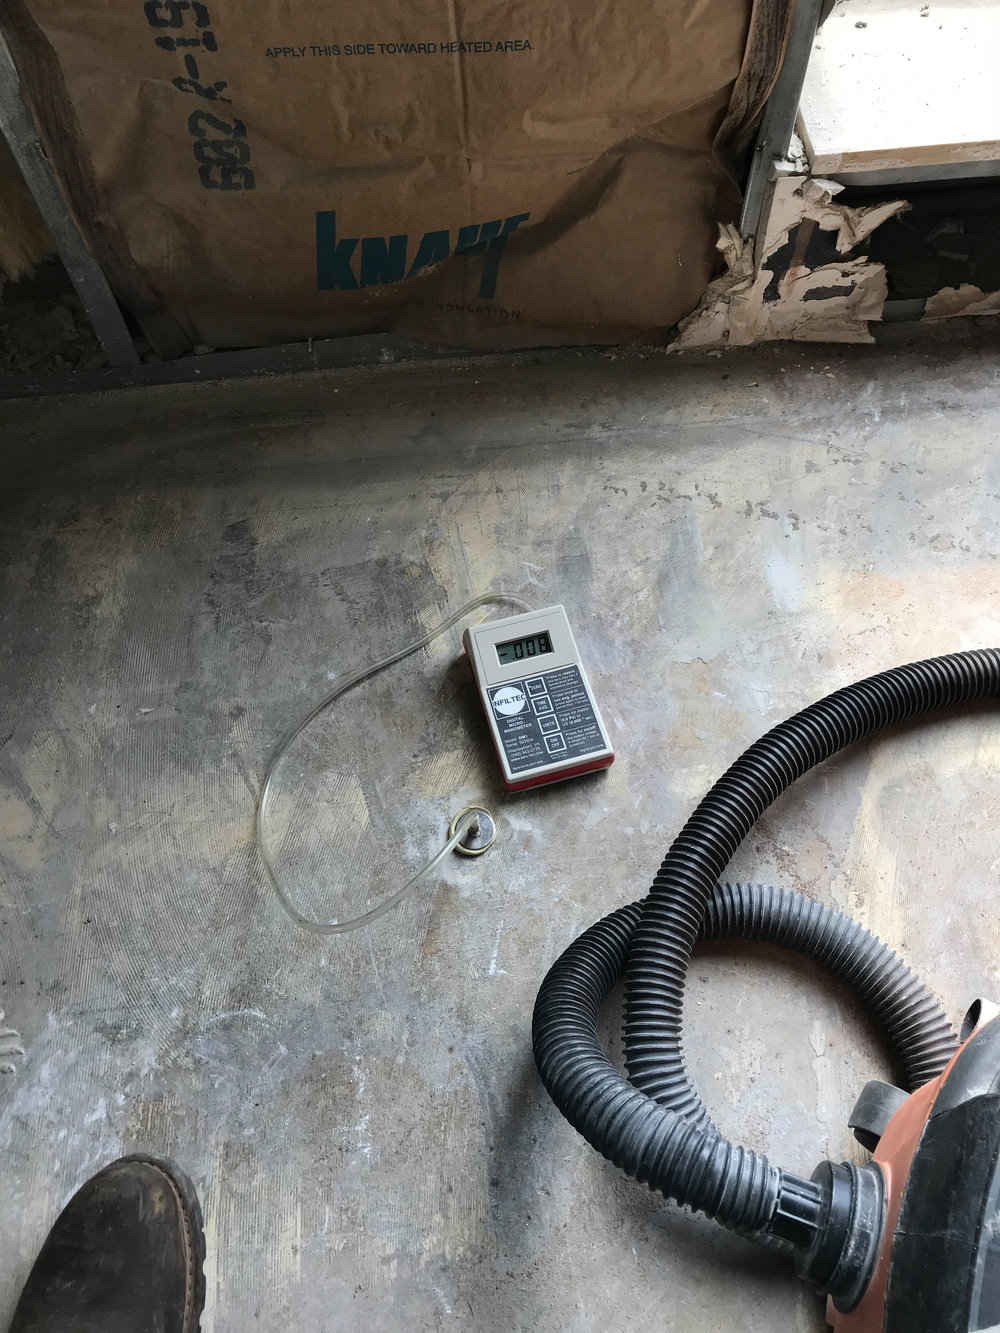 Vapor mitigation assessment of sub-slab resistance, environmental influence and pressure field extension (PFE) testing using a digital-manometer